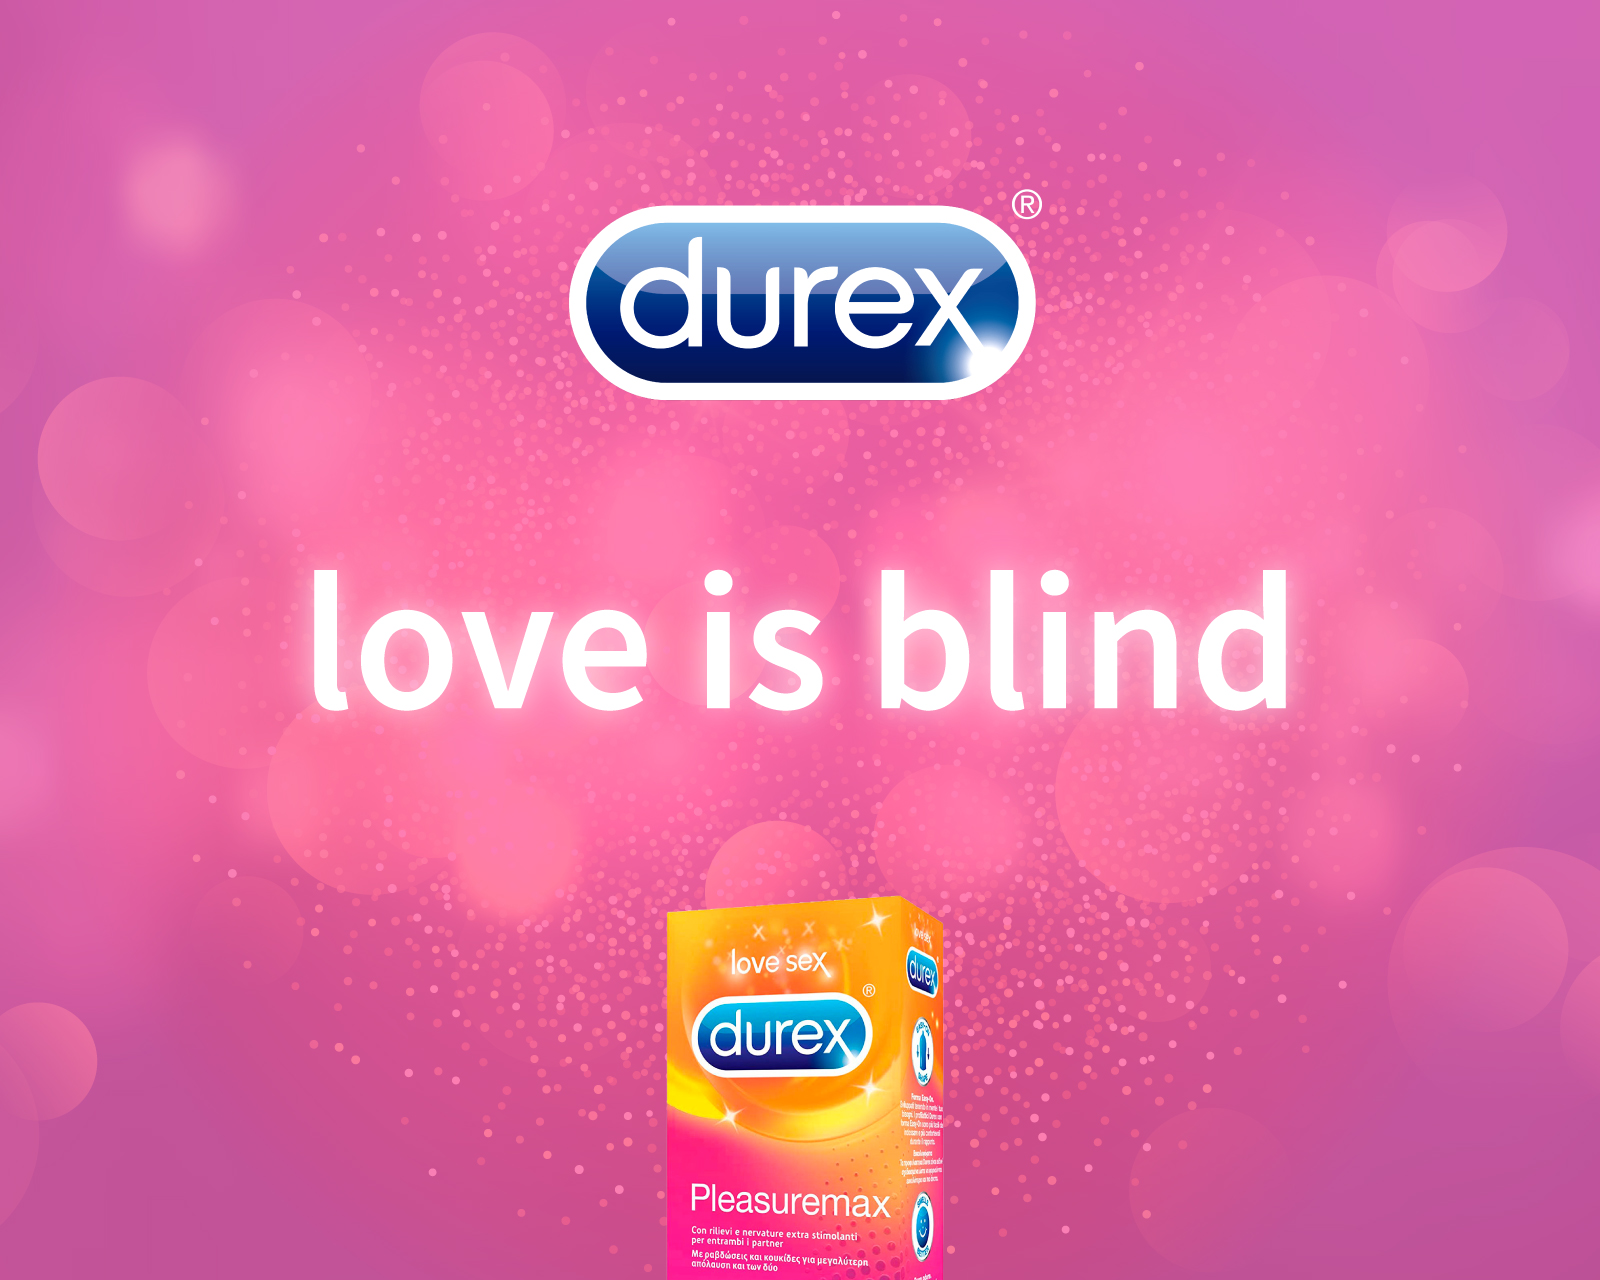 Luca Forlani Graphic Design Durex Pleasuremax Love is blind img cover